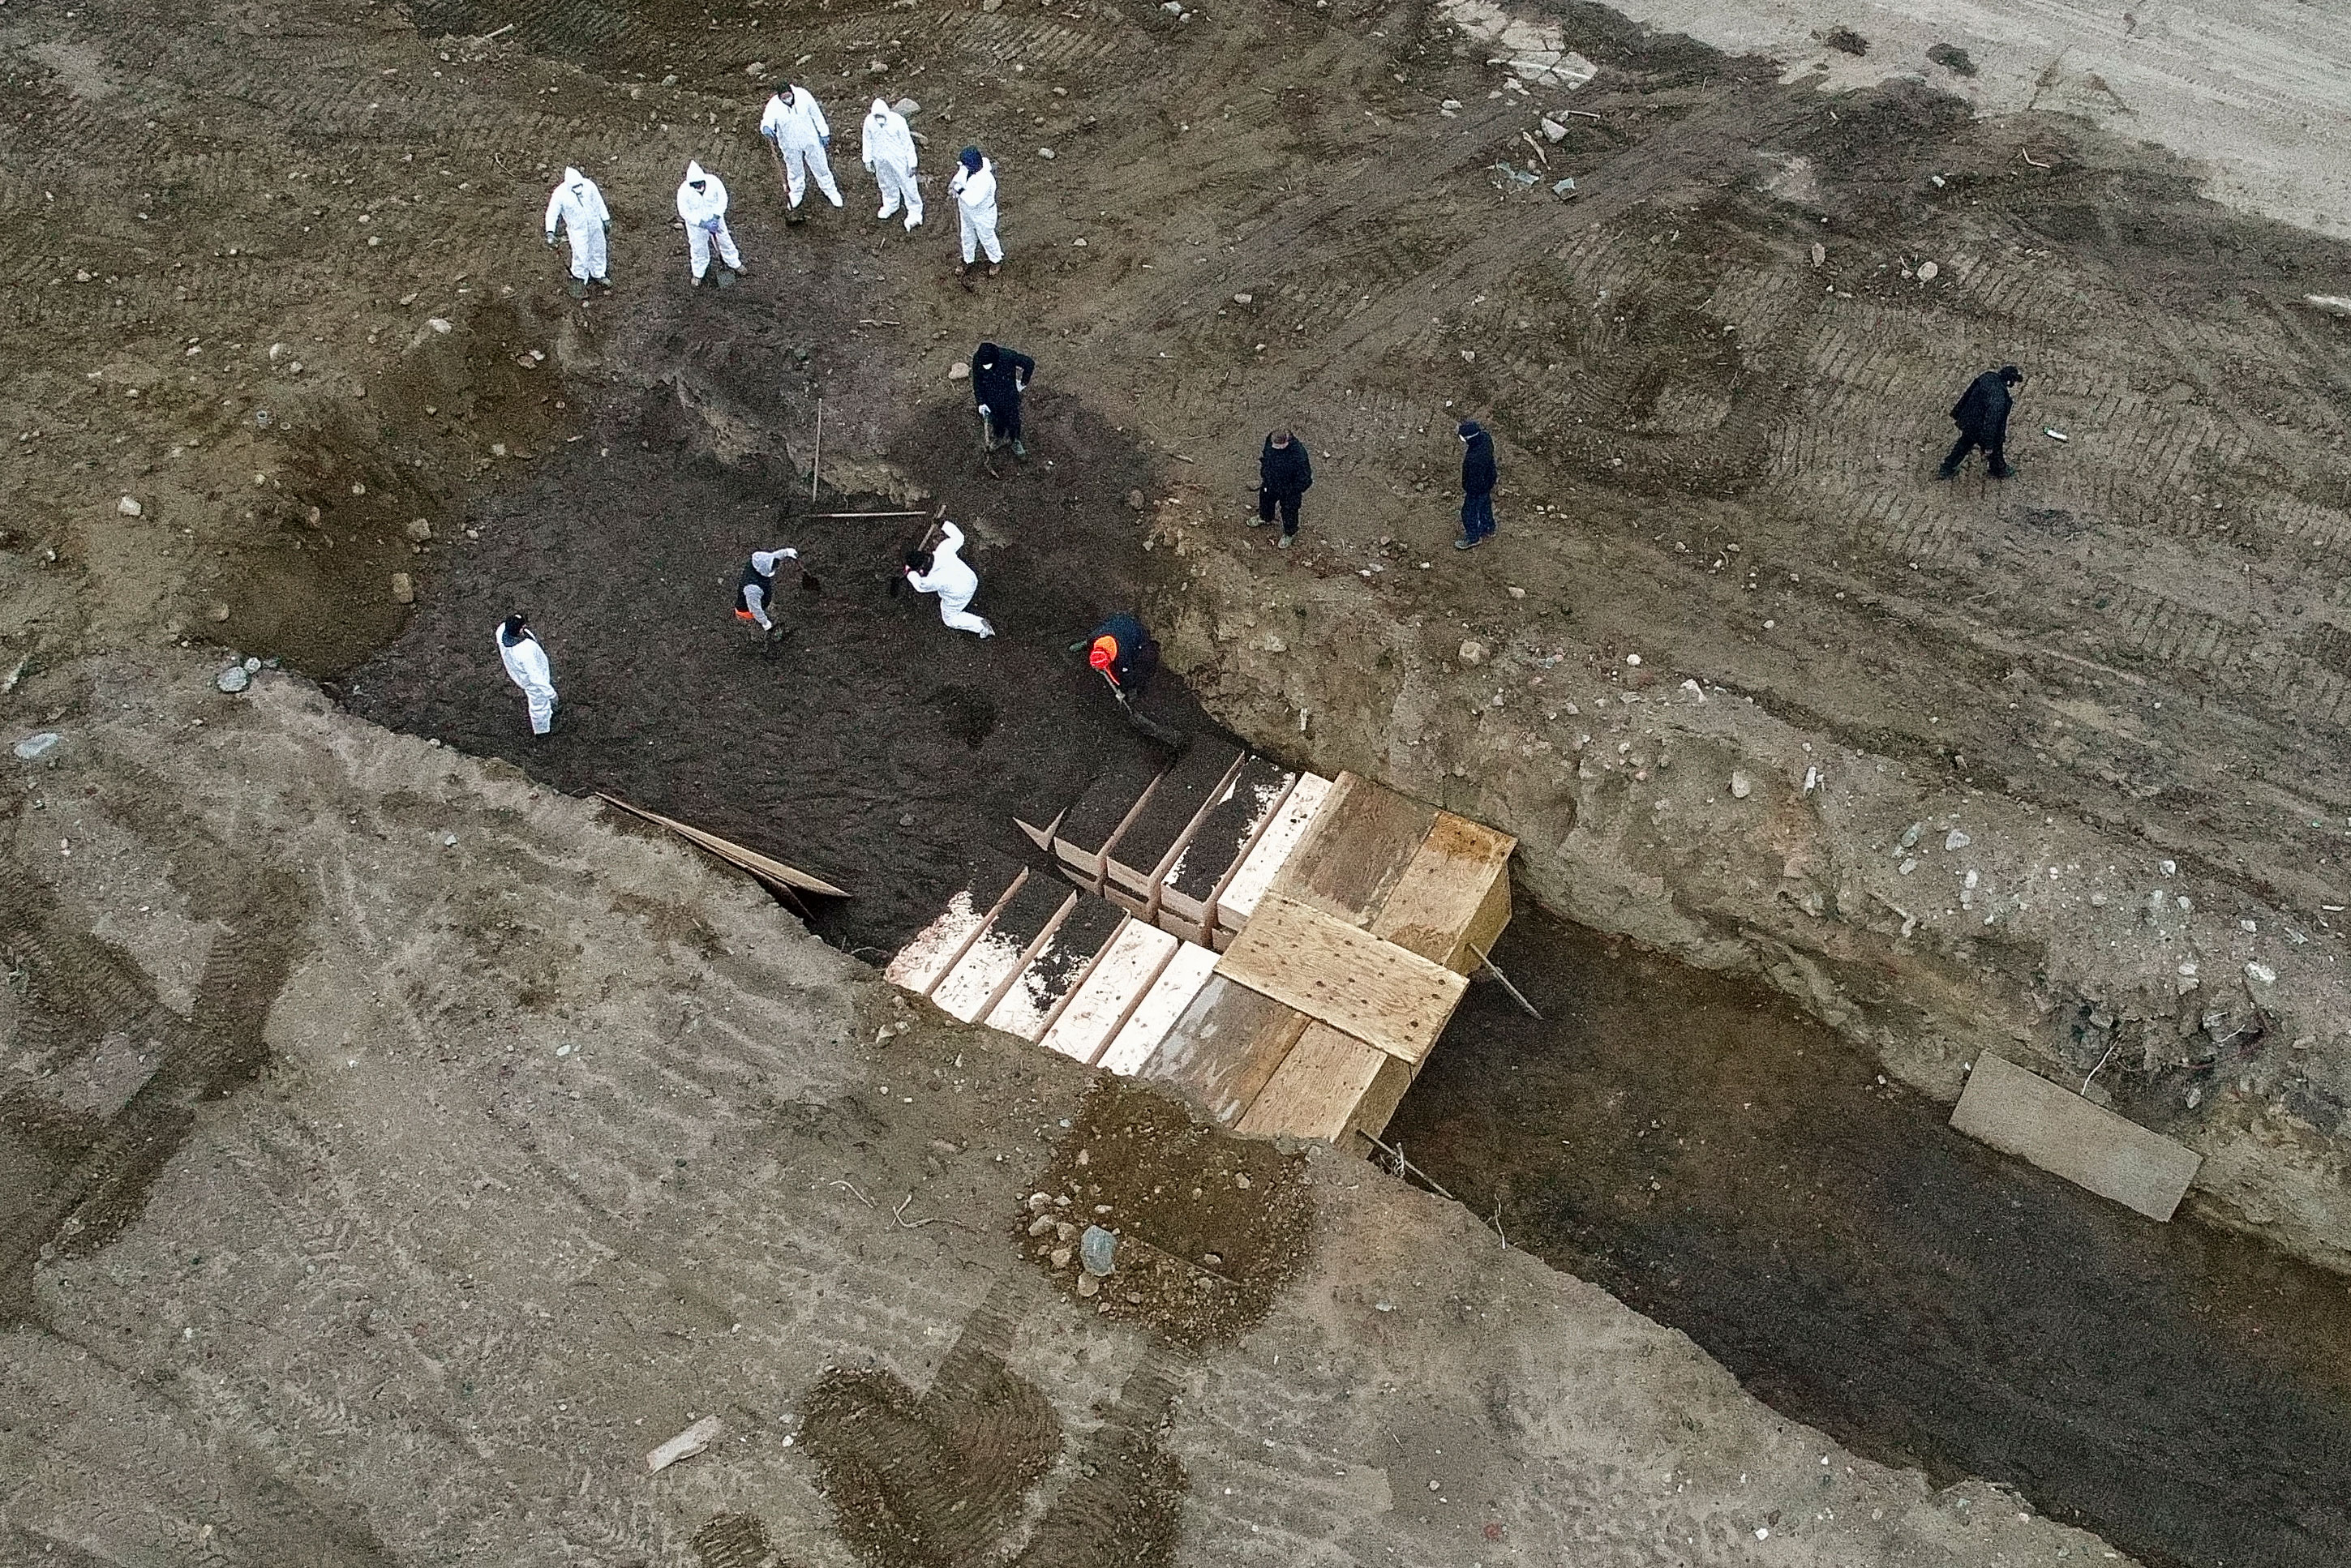 Workers bury bodies on Hart Island, in the Bronx borough of New York, on April 9.